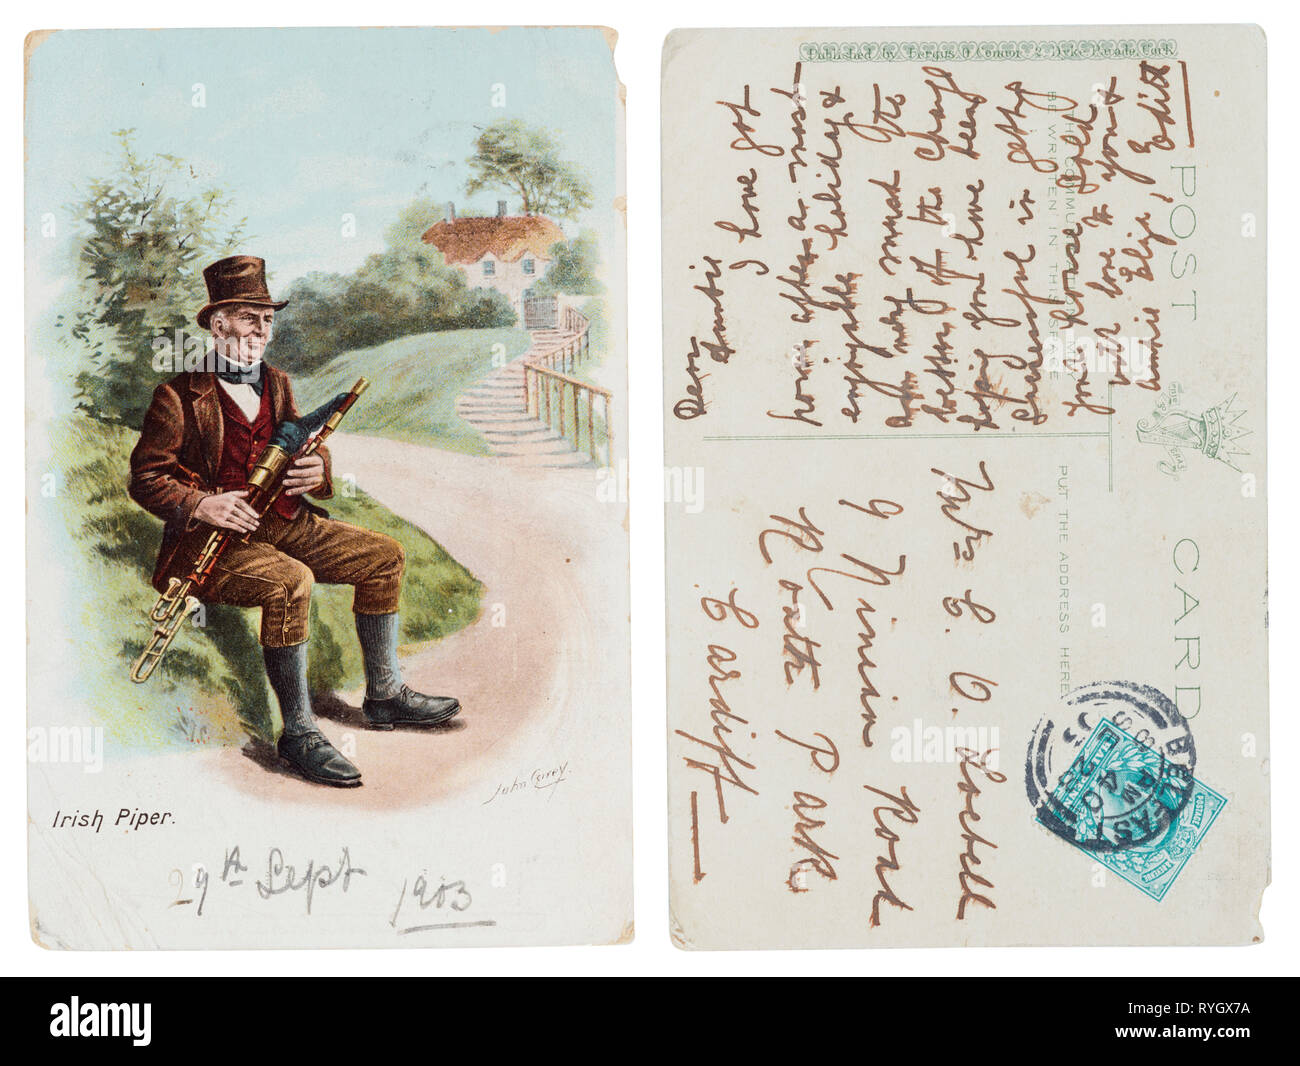 Postcard of an Irish Piper illustration sent to Cardiff from Belfast in 1903 - Stock Image